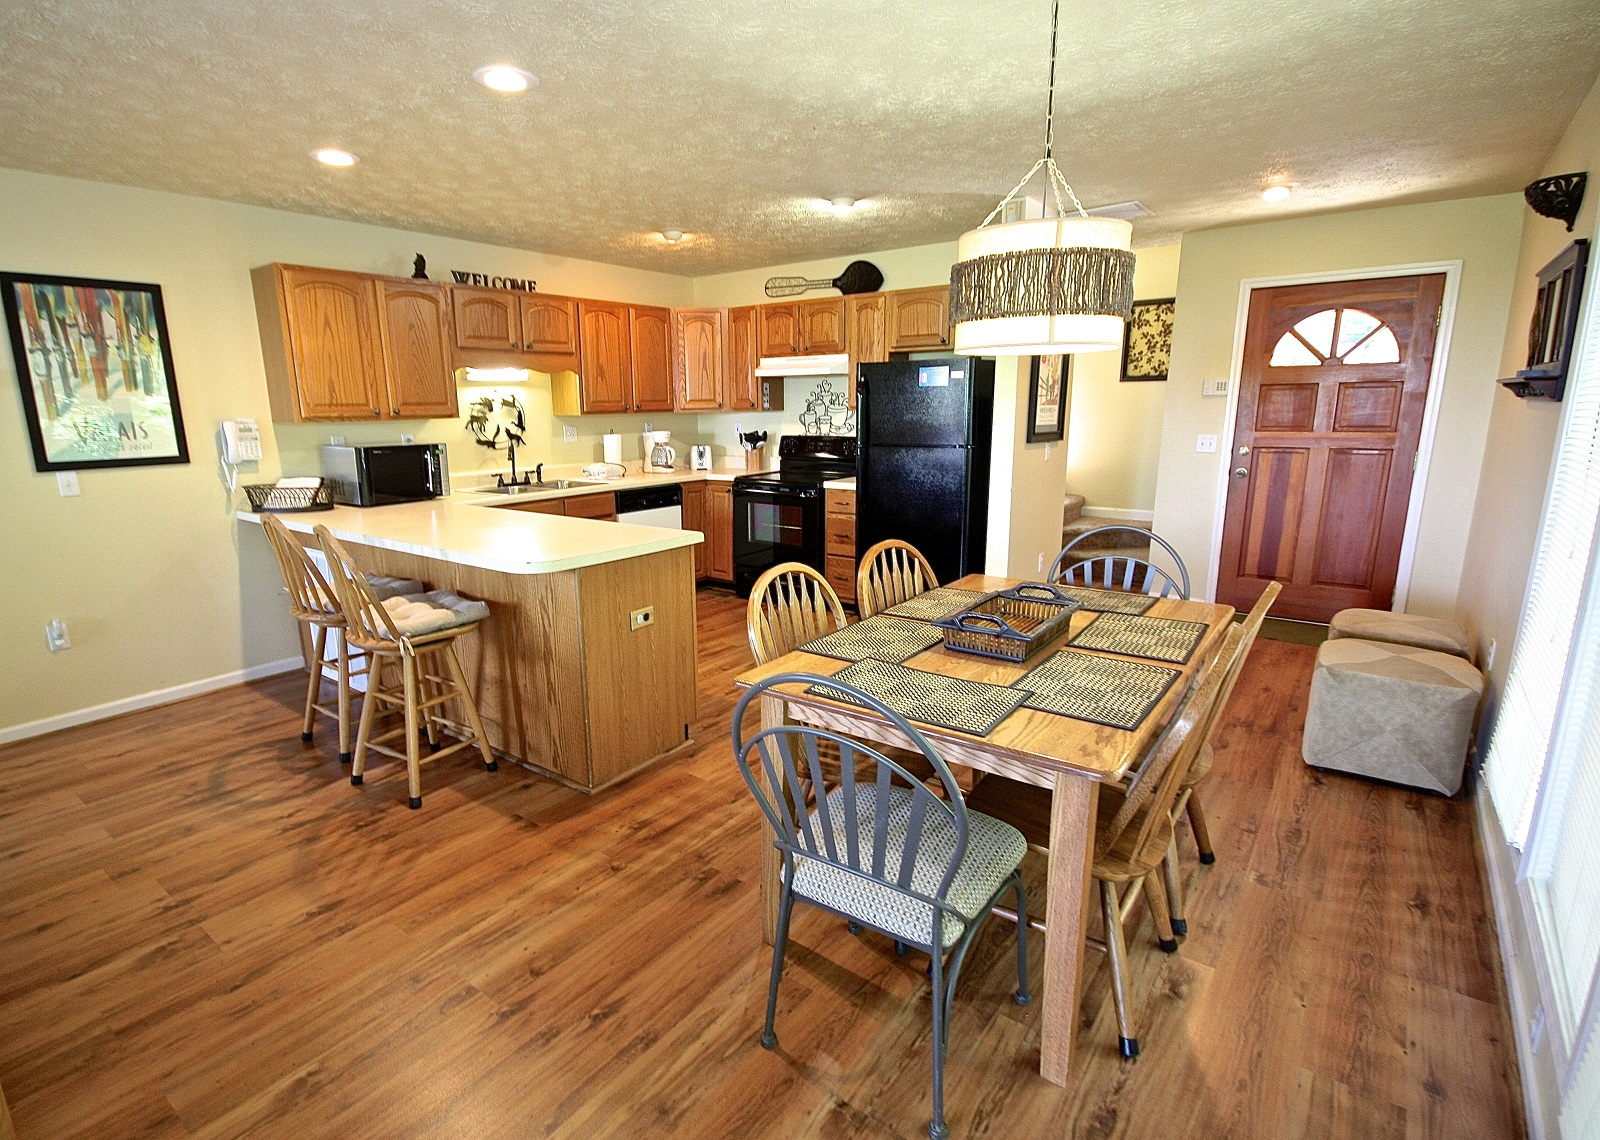 Squirrel hill a 4 bedroom cabin in gatlinburg tennessee - 4 bedroom cabins in gatlinburg tn ...